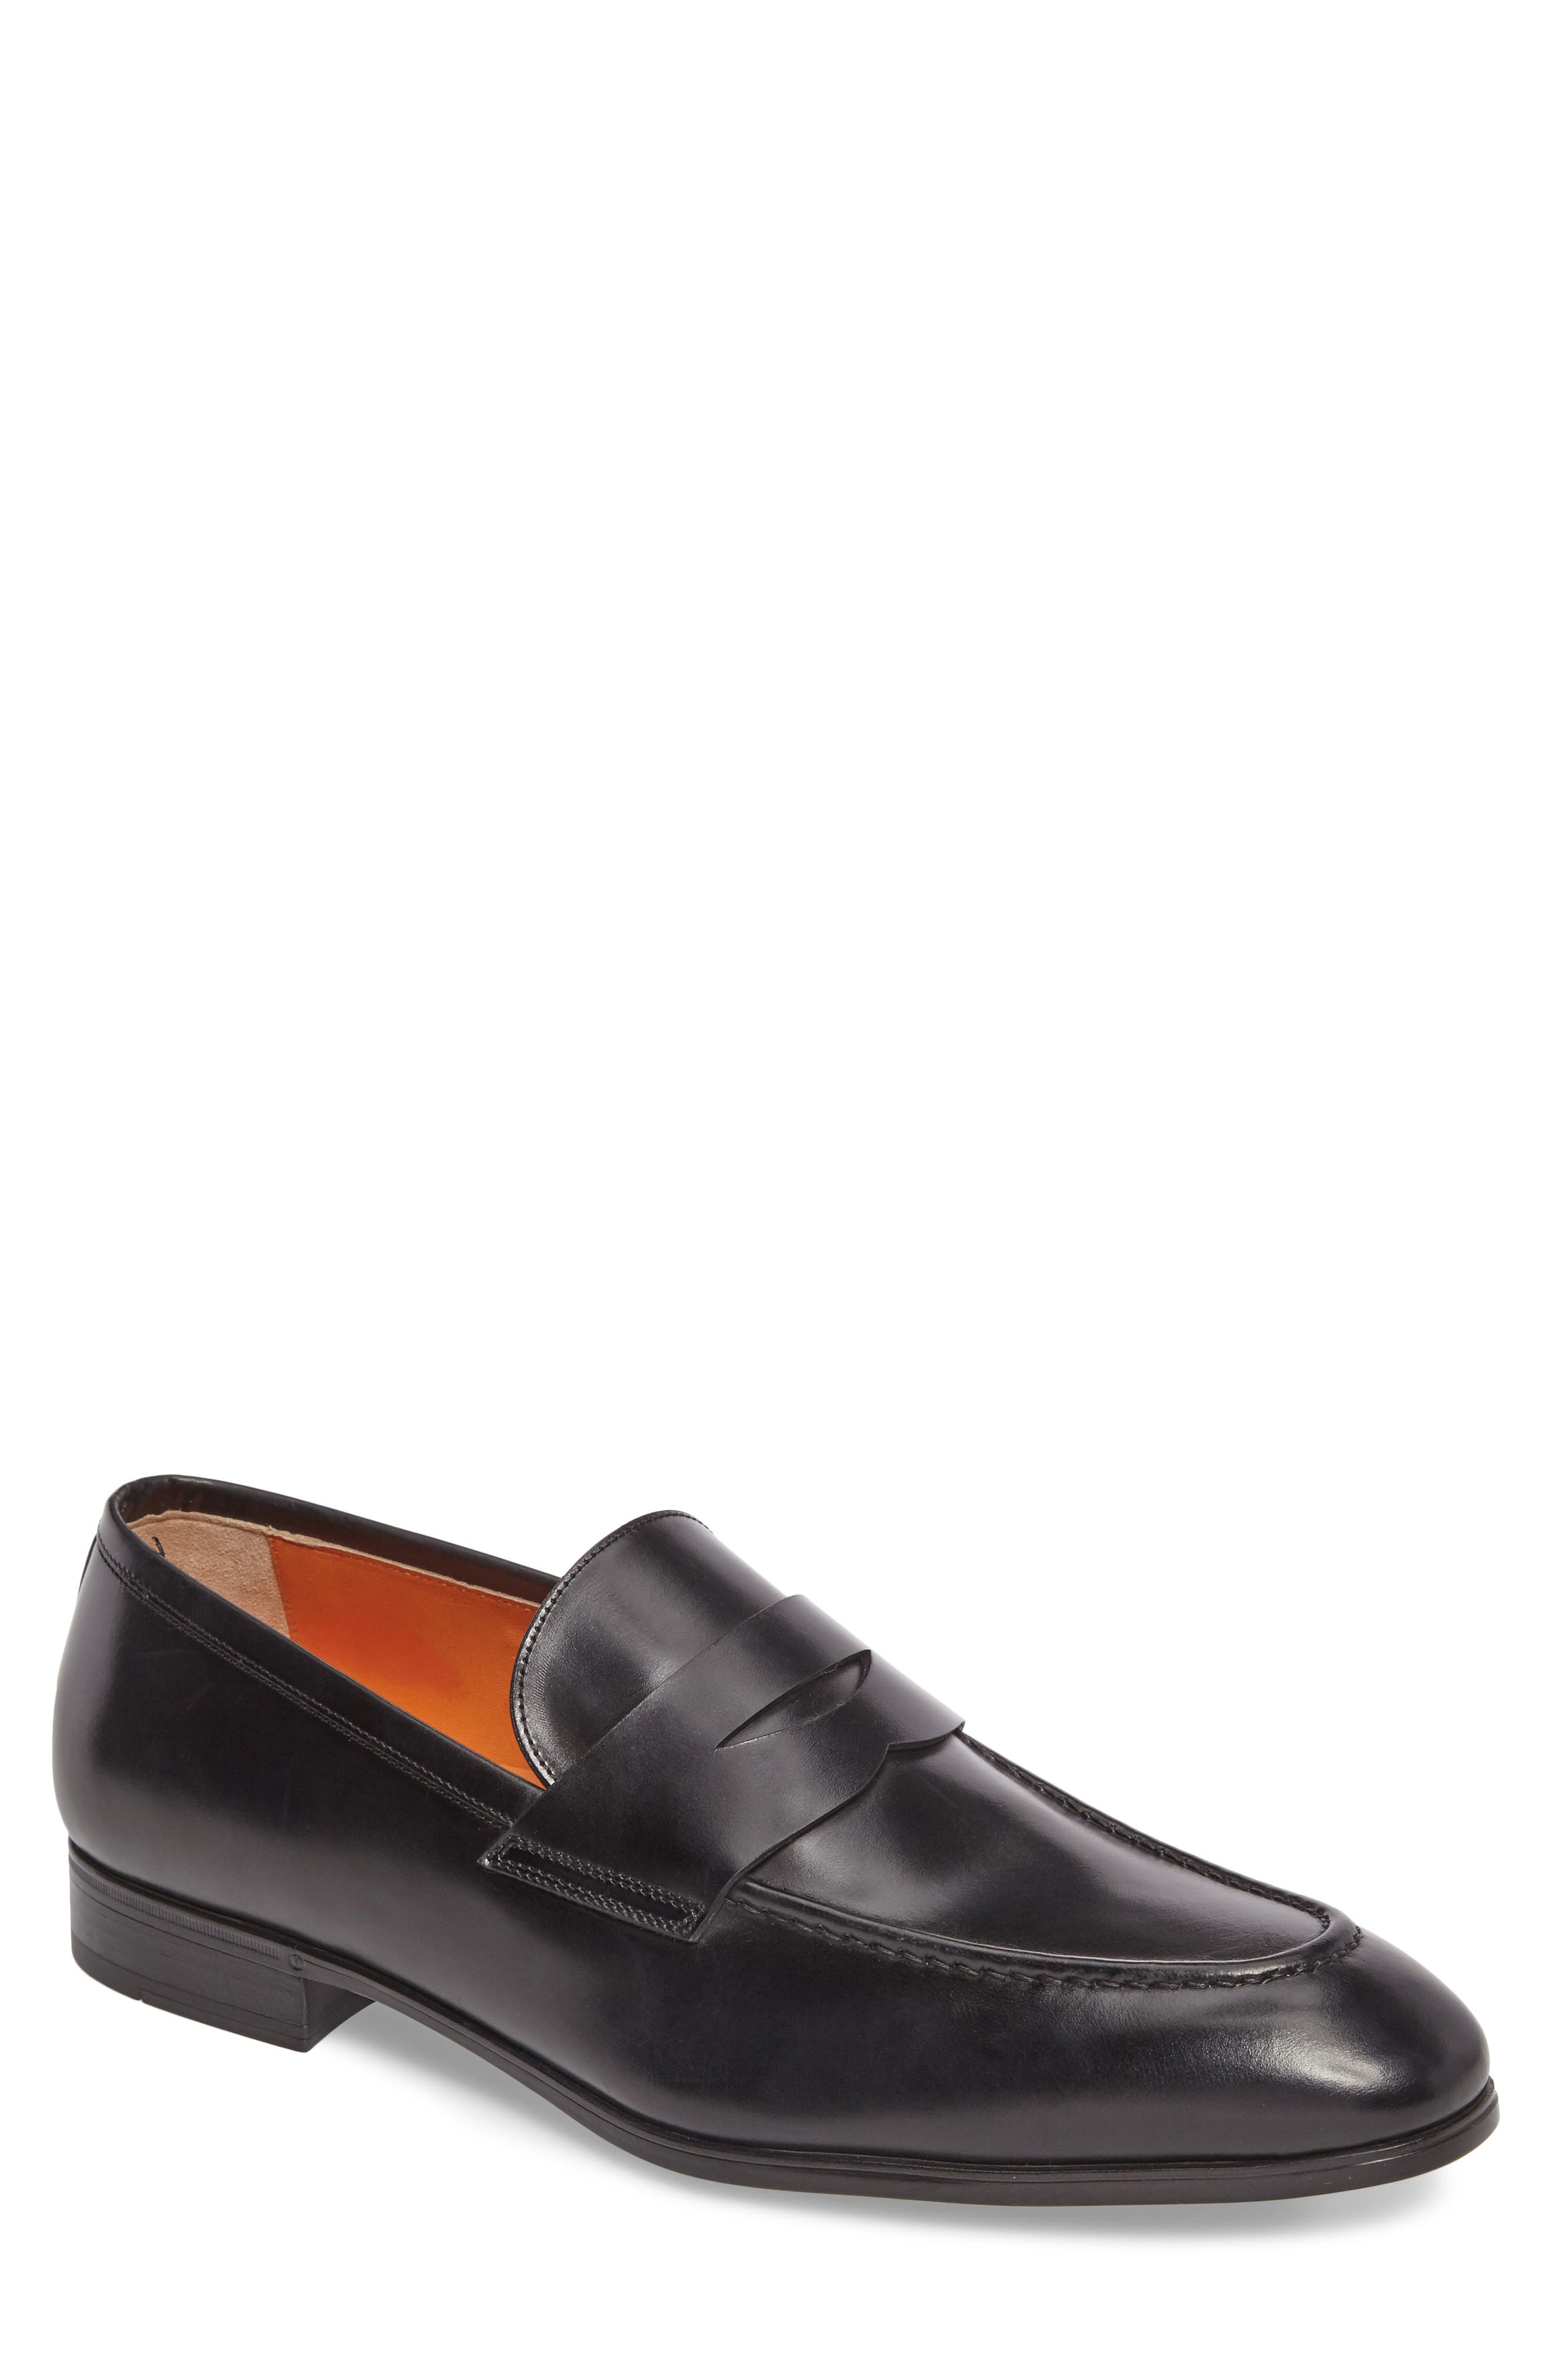 Gavin Penny Loafer,                             Main thumbnail 1, color,                             Black